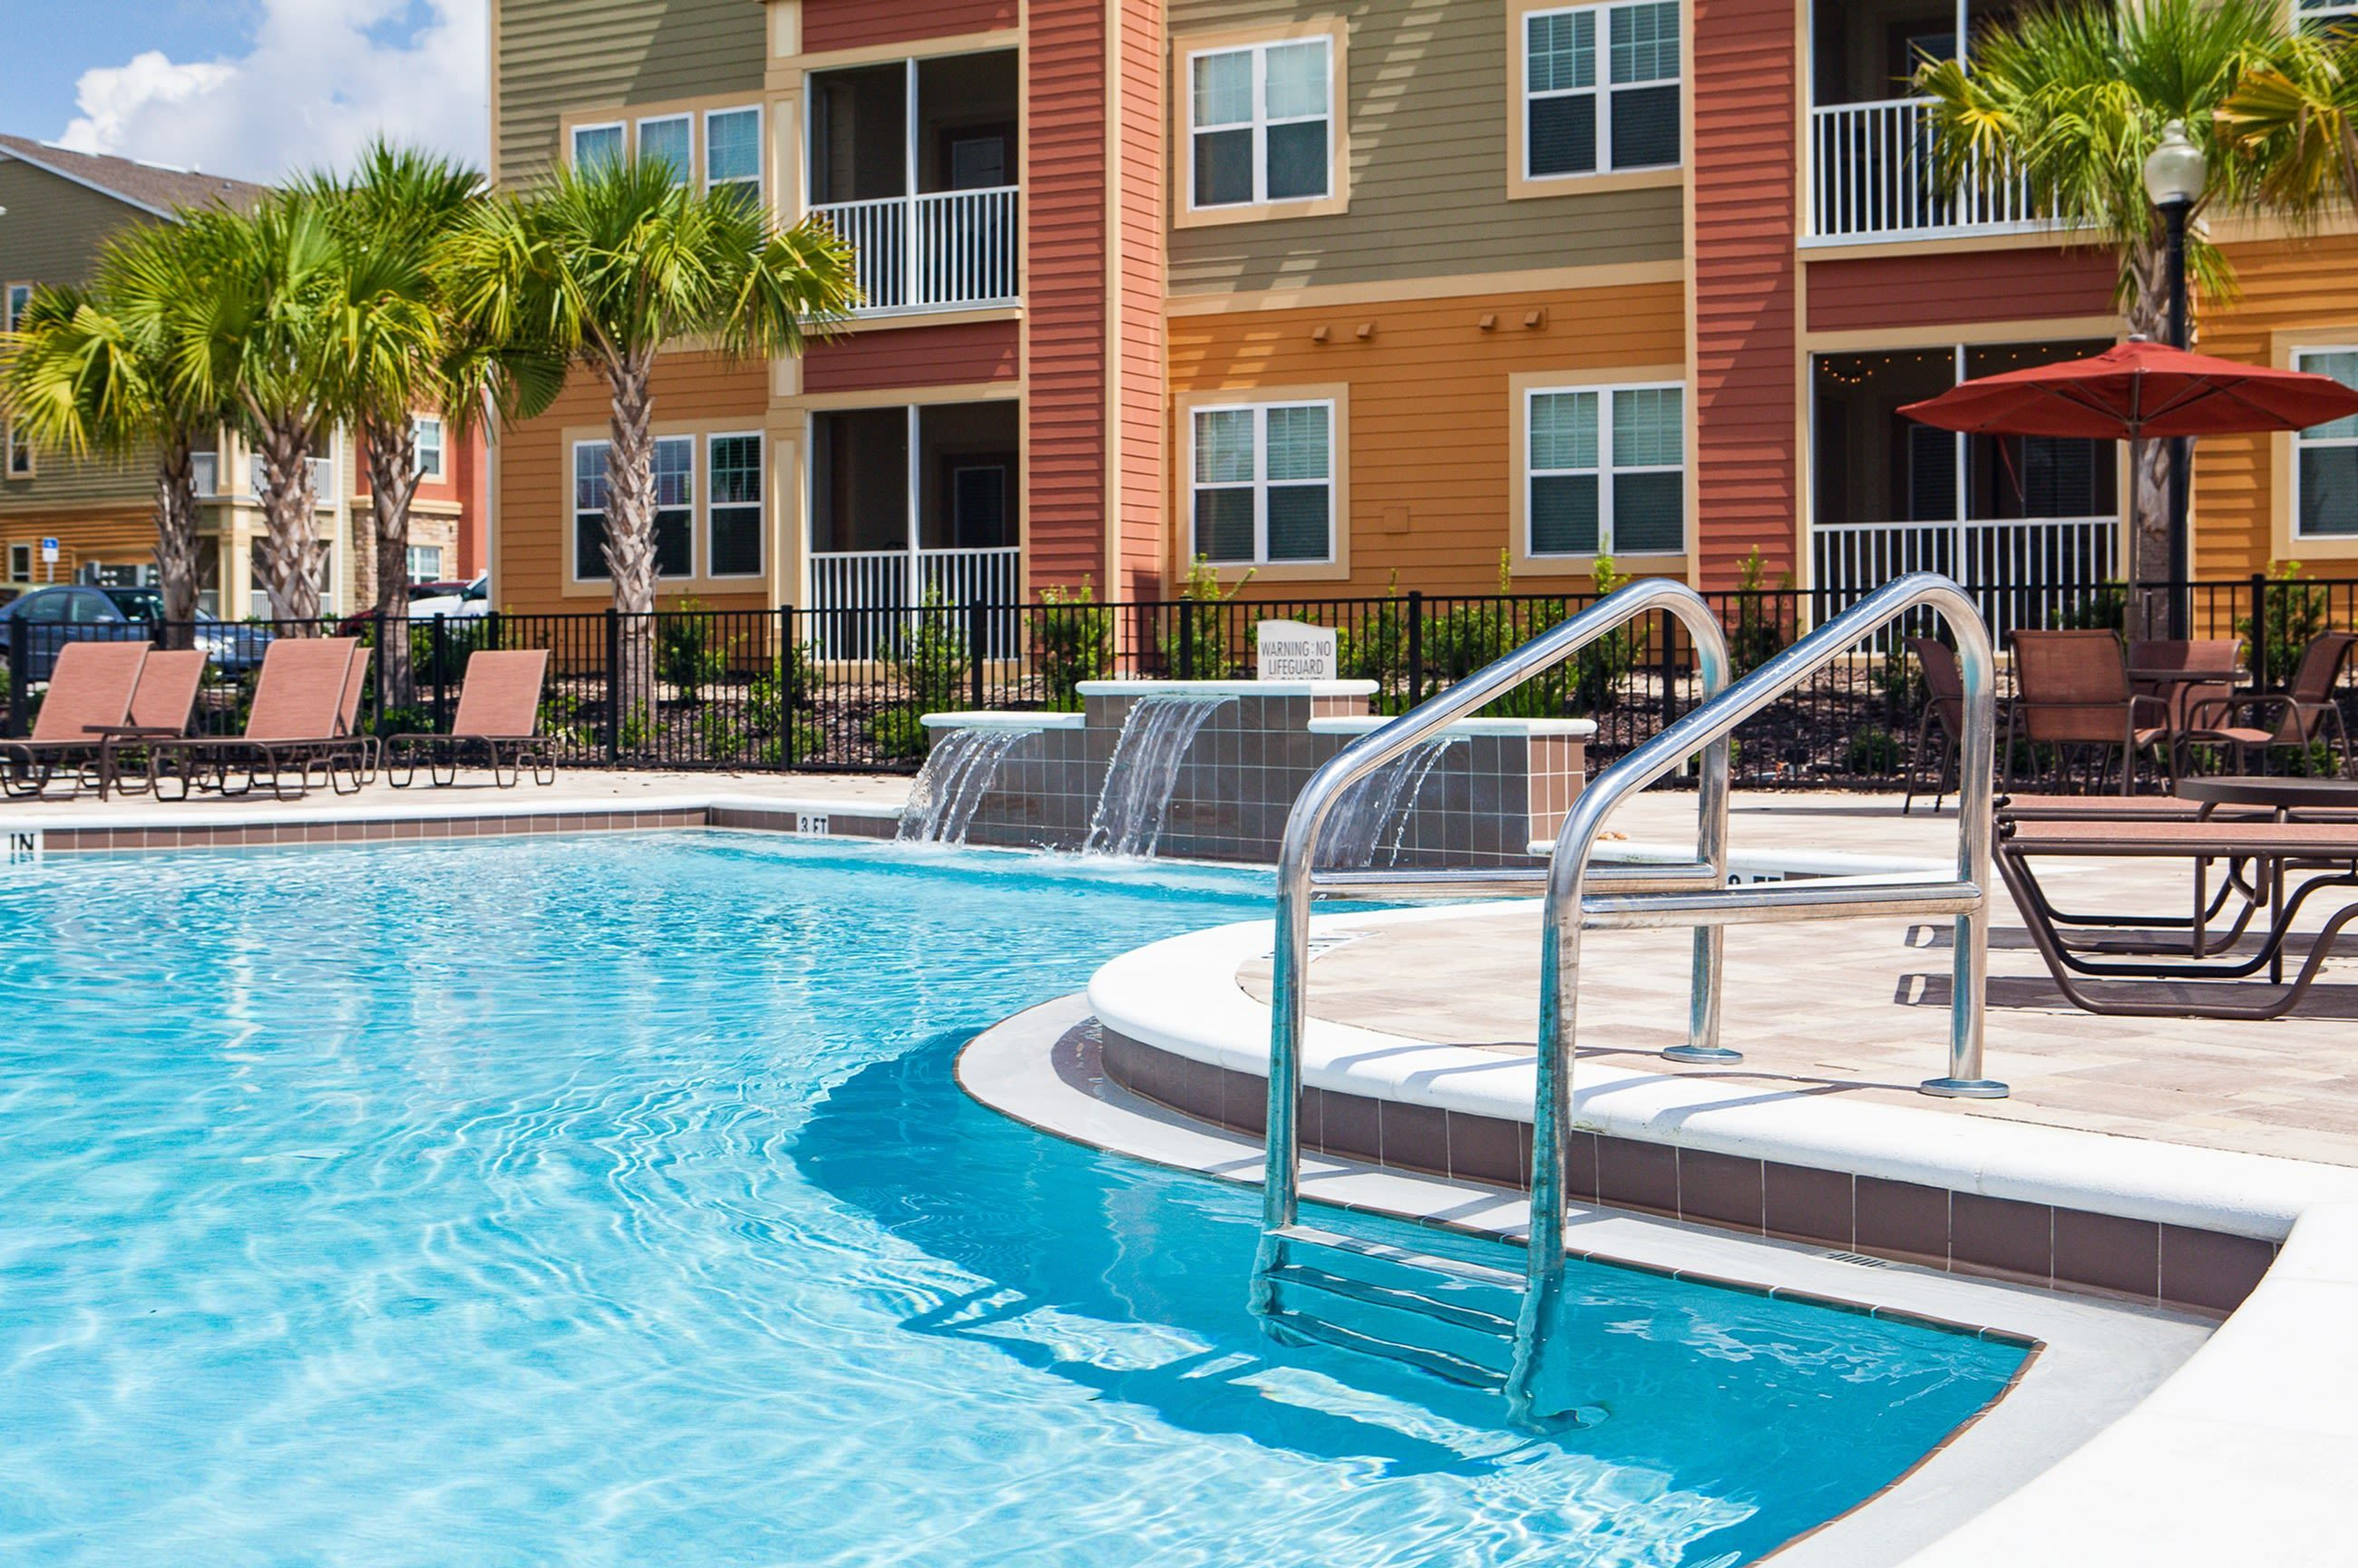 Apartments in Clermont, FL